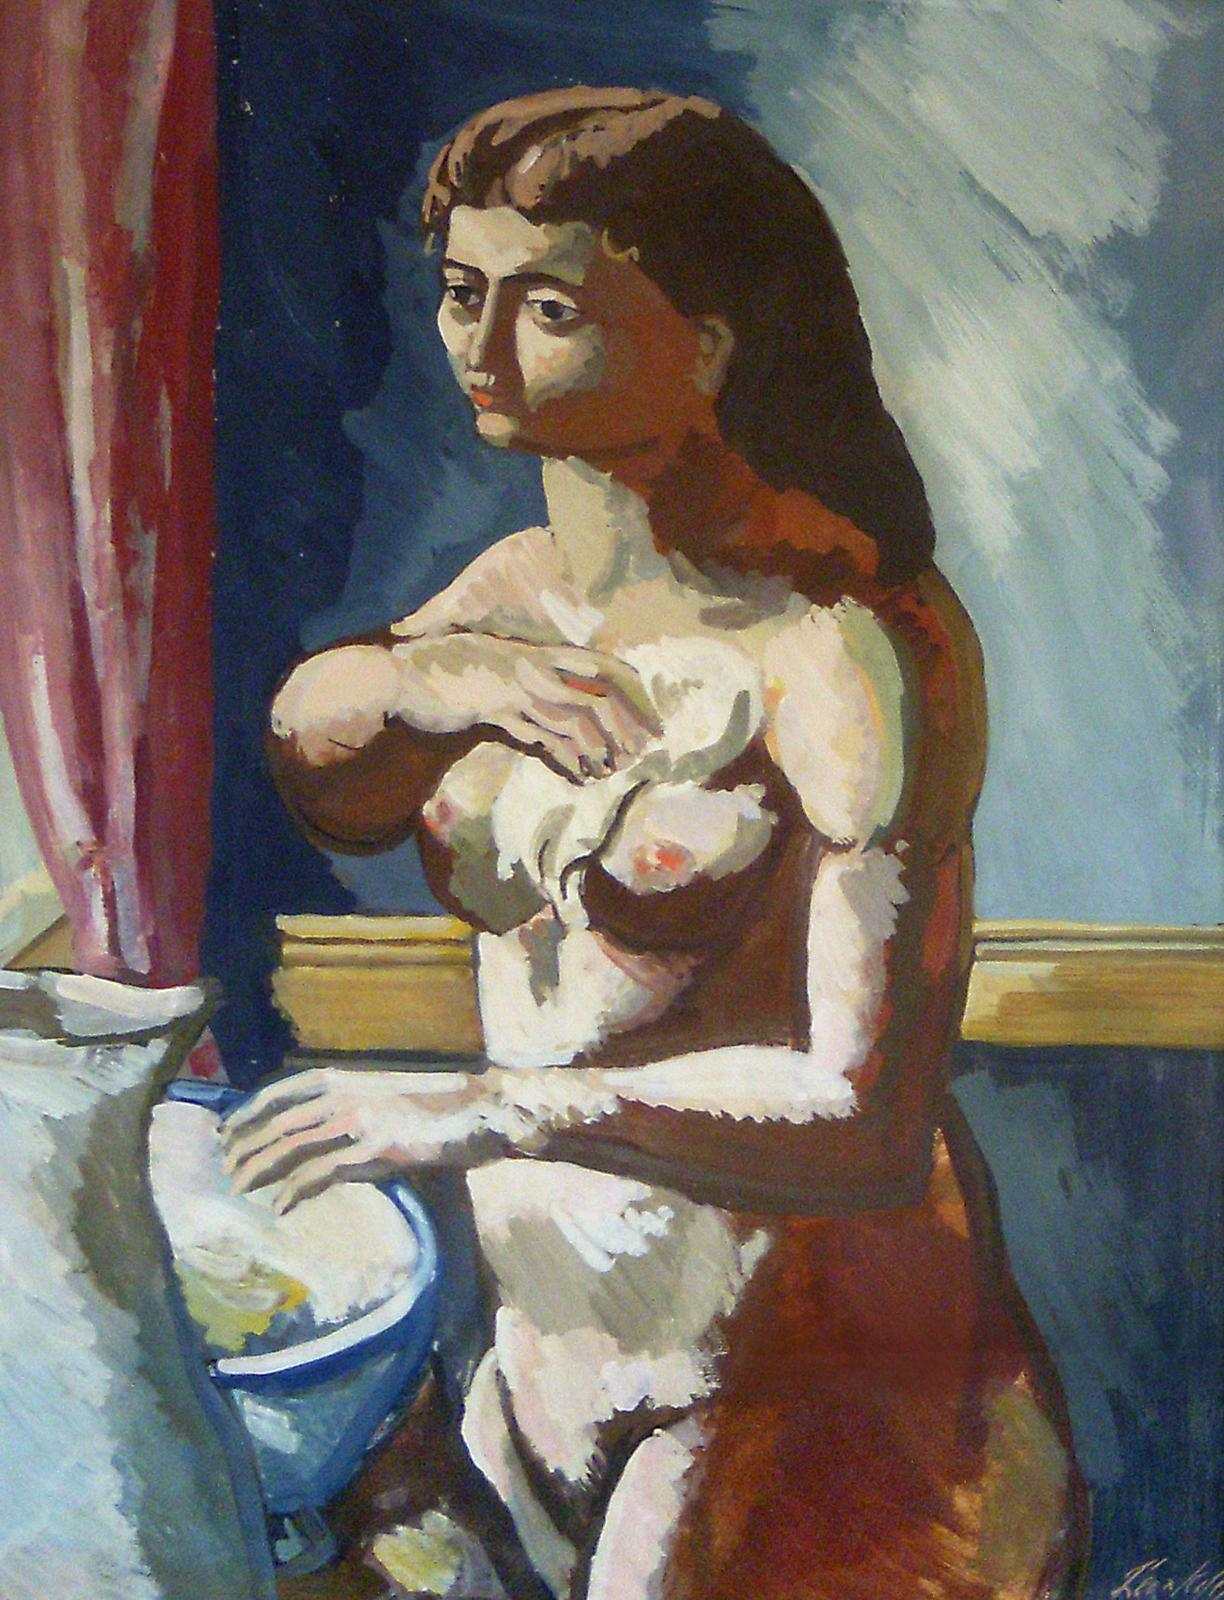 Woman at Basin, Picasso Style Portrait of a Female Nude, American Modernist